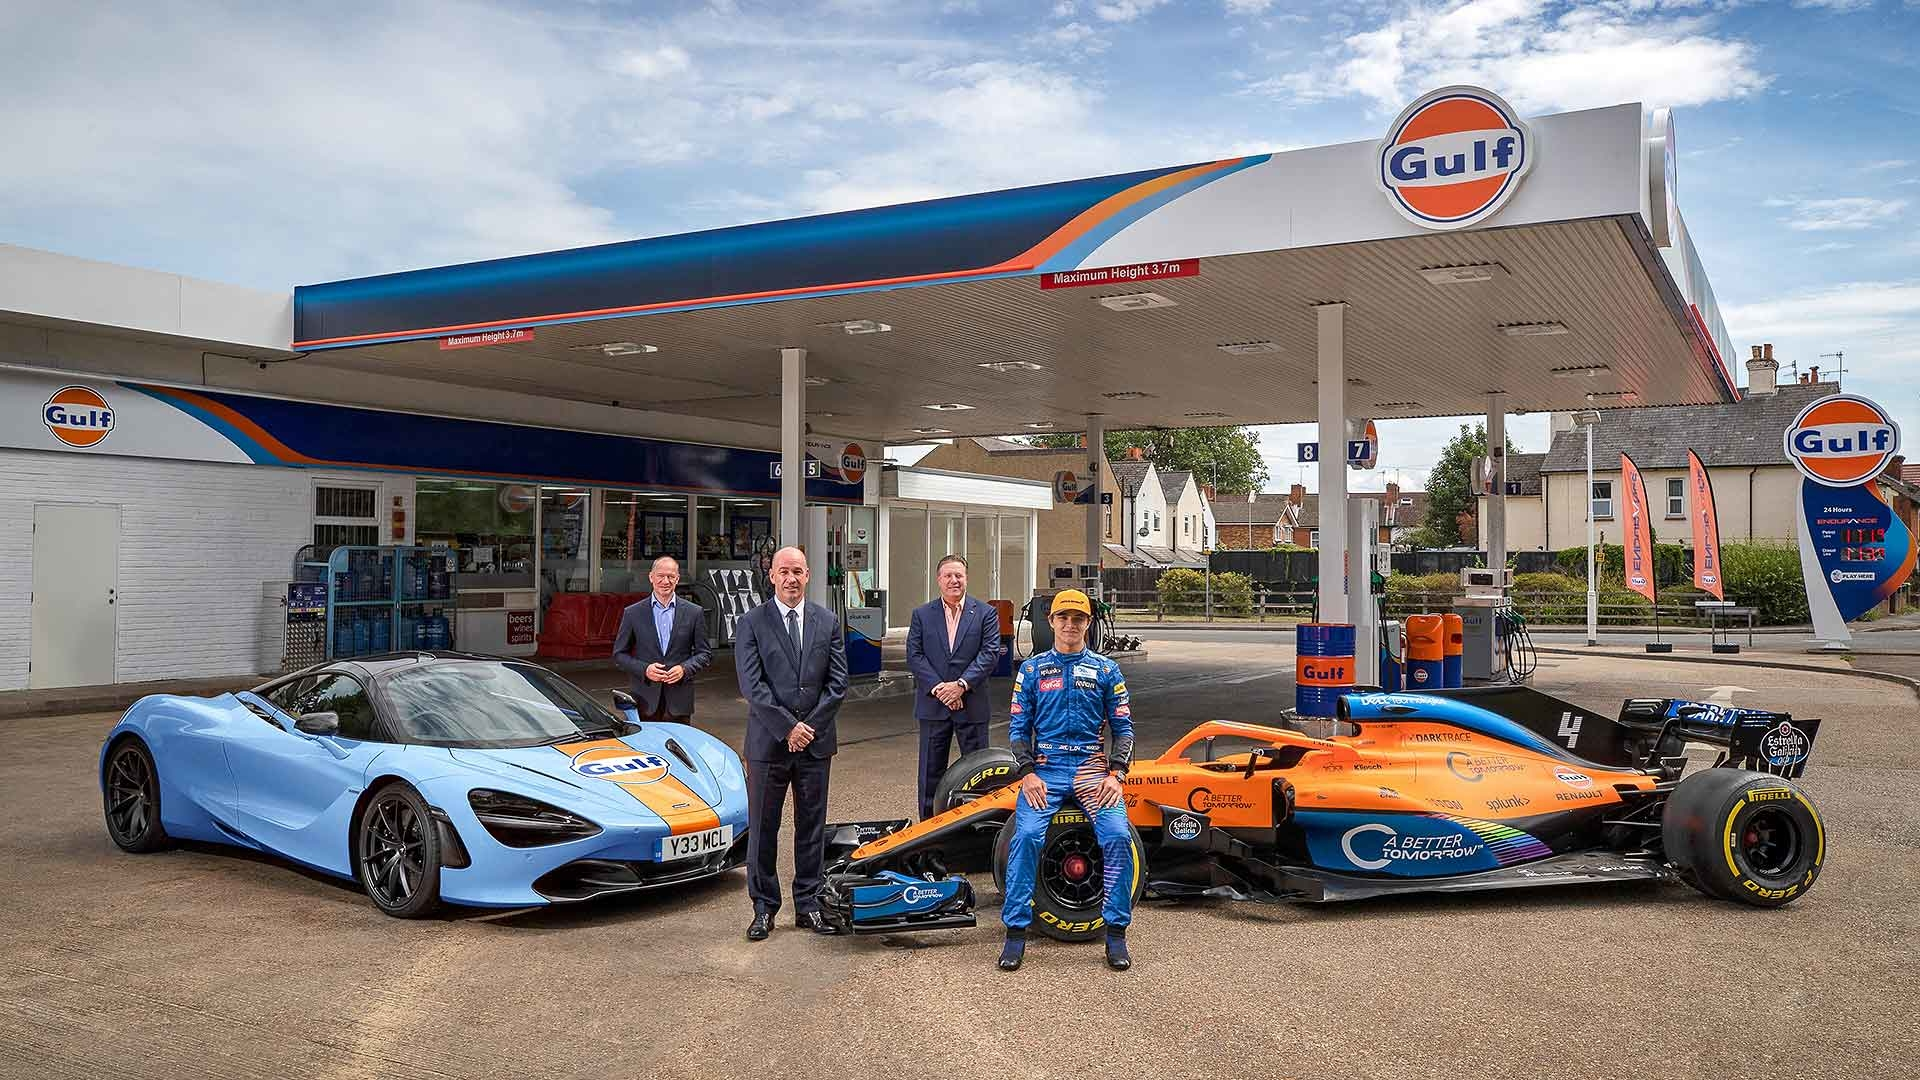 McLaren Automotive and Gulf Oil